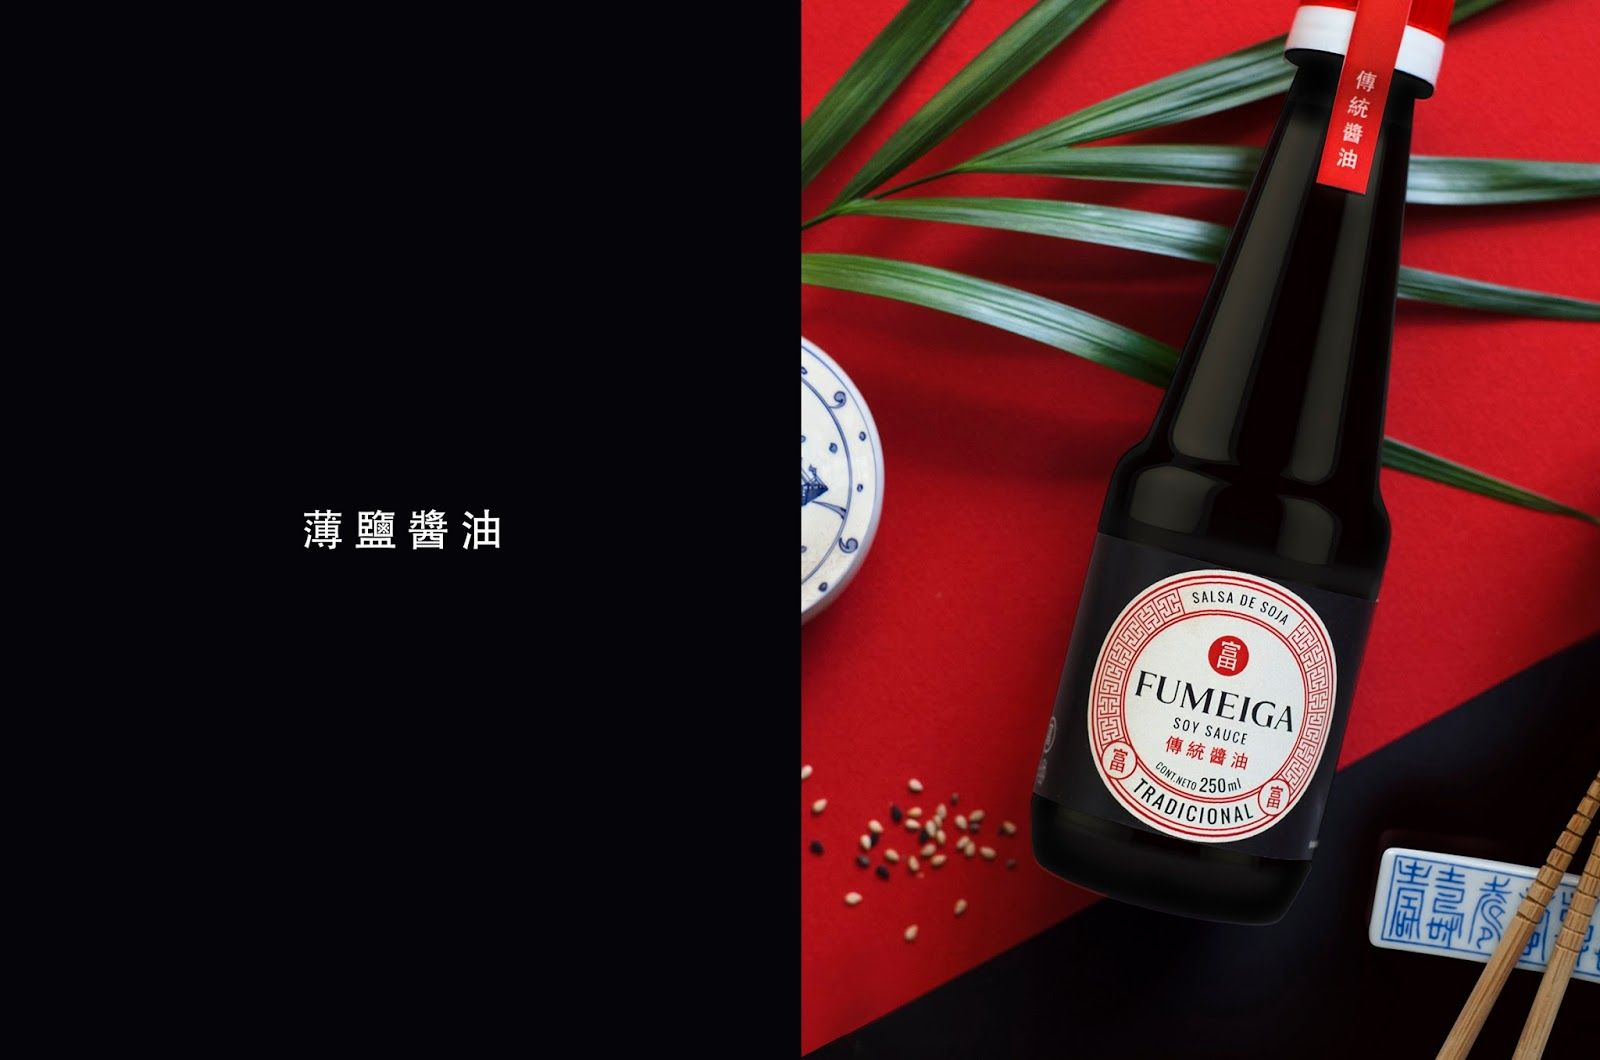 Fumeiga Soy Sauce Creative Packaging Design Packaging Inspiration Packaging Design Inspiration